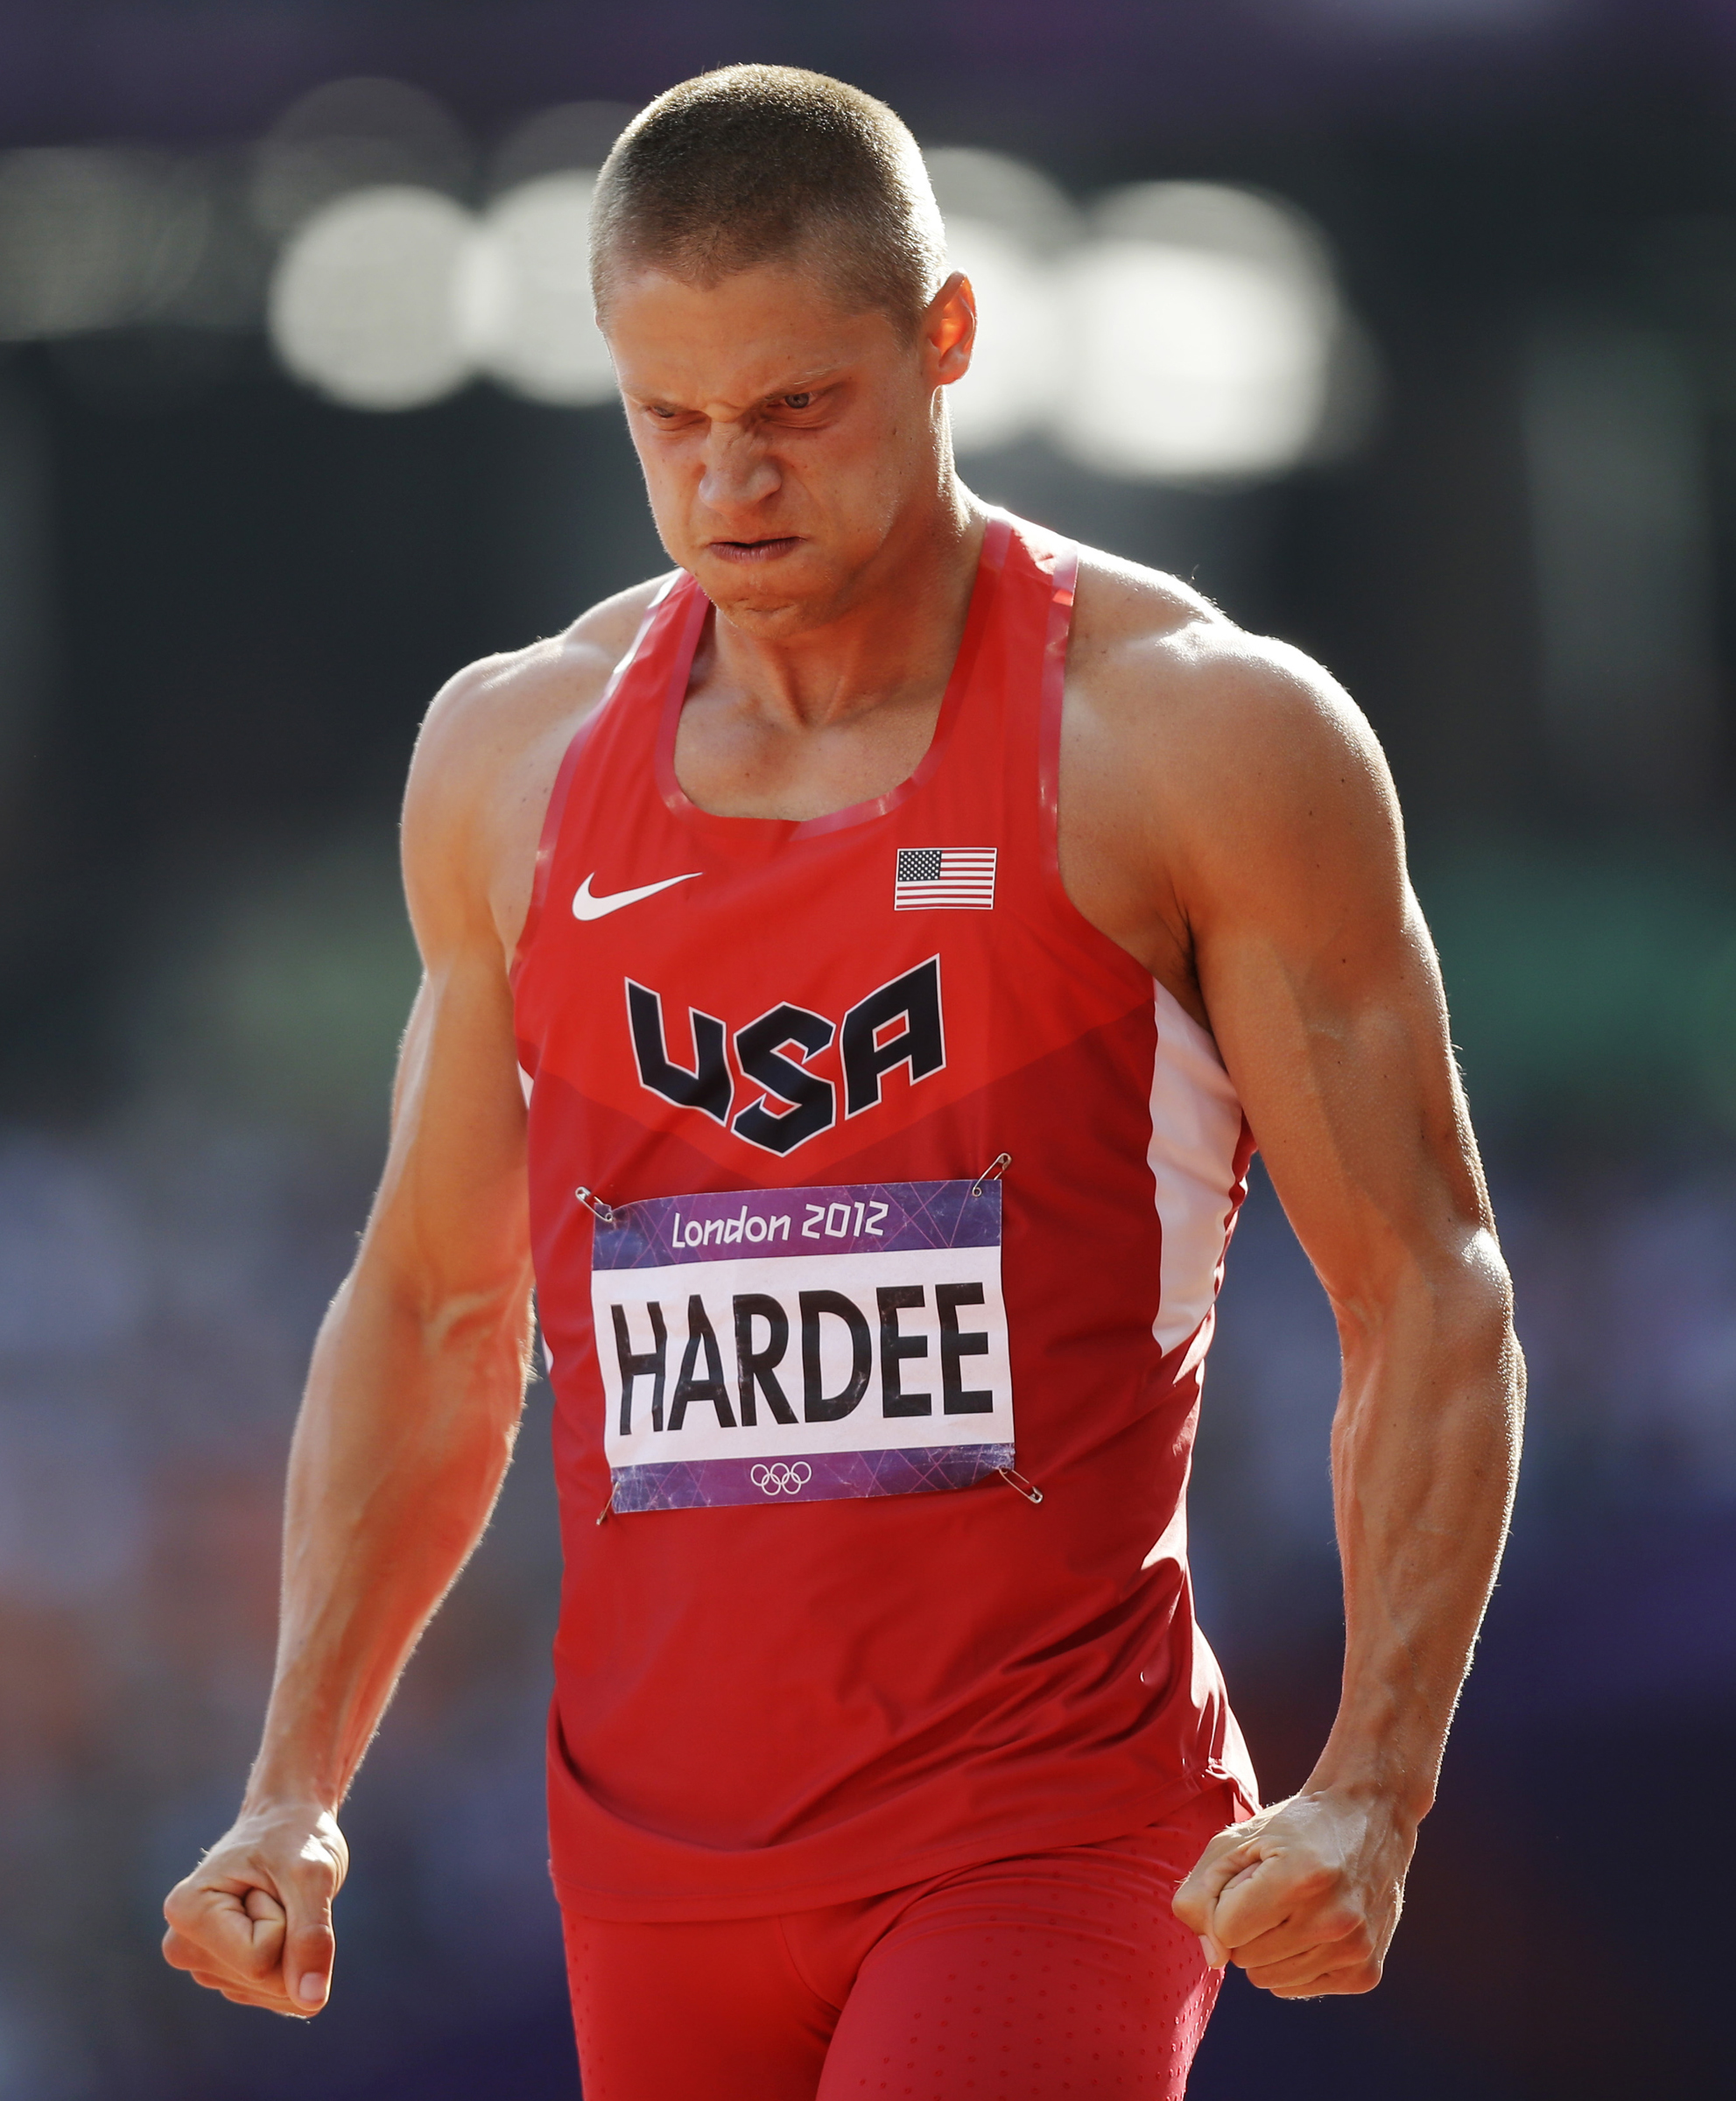 FILE - In this Aug. 9, 2012, file photo, United States' Trey Hardee reacts after competing in a 110-meter hurdles heat of the decathlon at the 2012 Summer Olympics in London. Hardee wants to set the record straight: No, he's not retired. Never has been. T